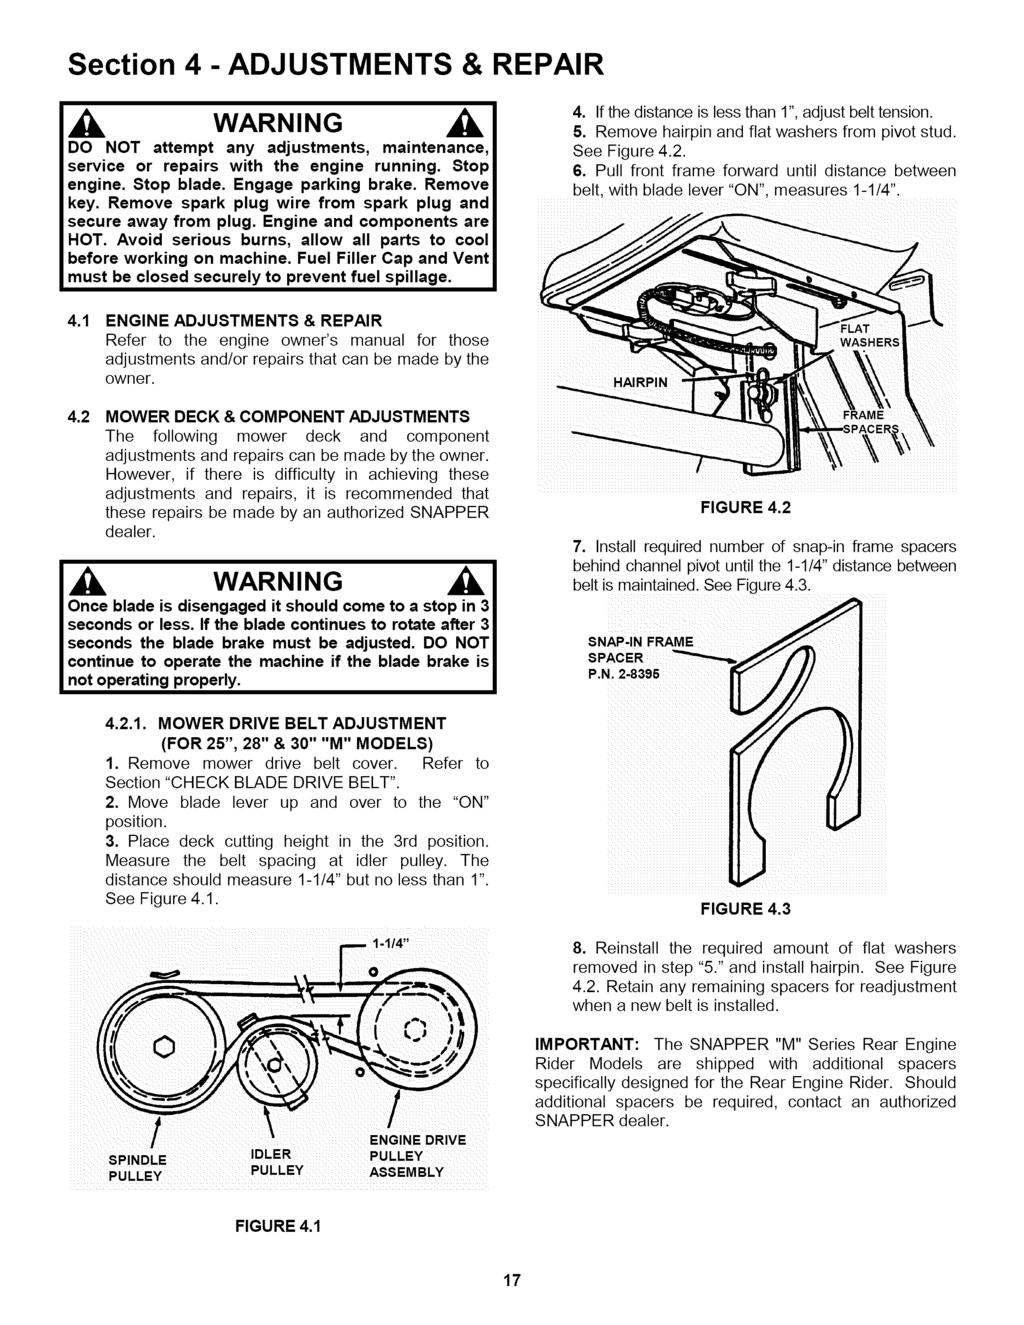 Rear Engine Riding Mower Series 19 Pdf Deck Belt Diagram In Addition John Deere Section 4 Adjustments Repair Do Not Attempt Any Maintenance Service Or